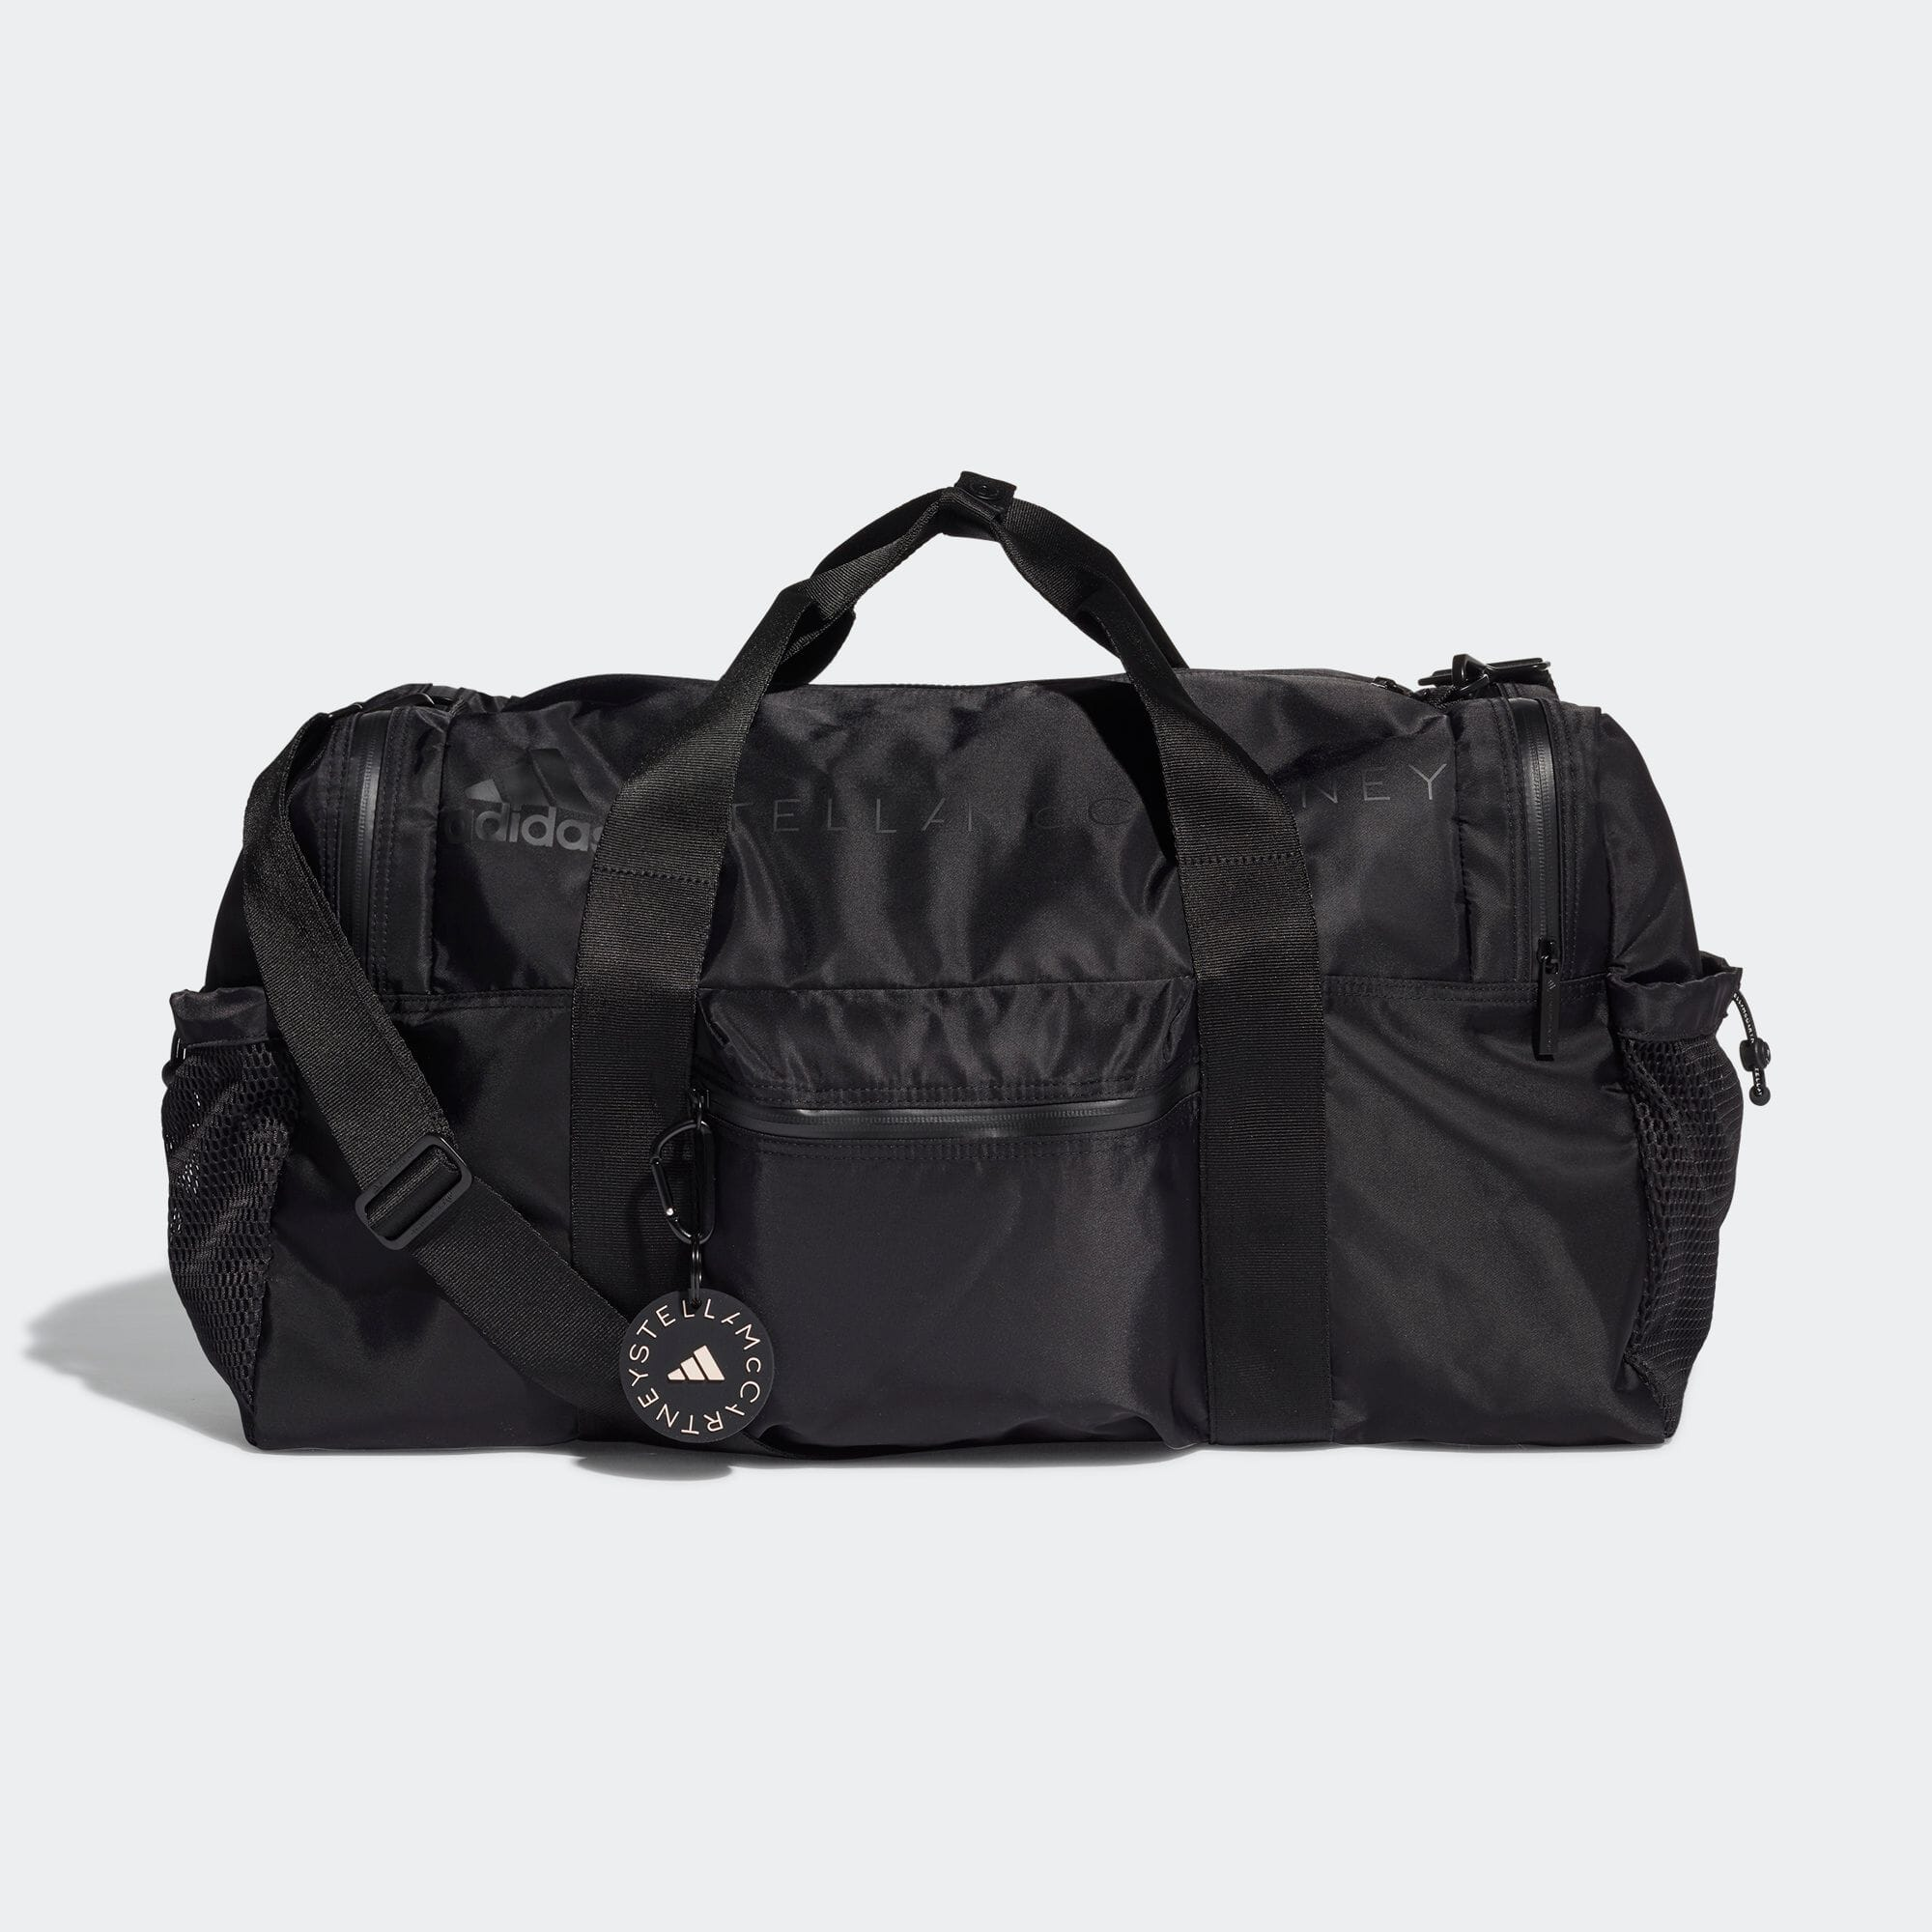 adidas by Stella McCartney ダッフルバッグ / adidas by Stella McCartney Duffel Bag